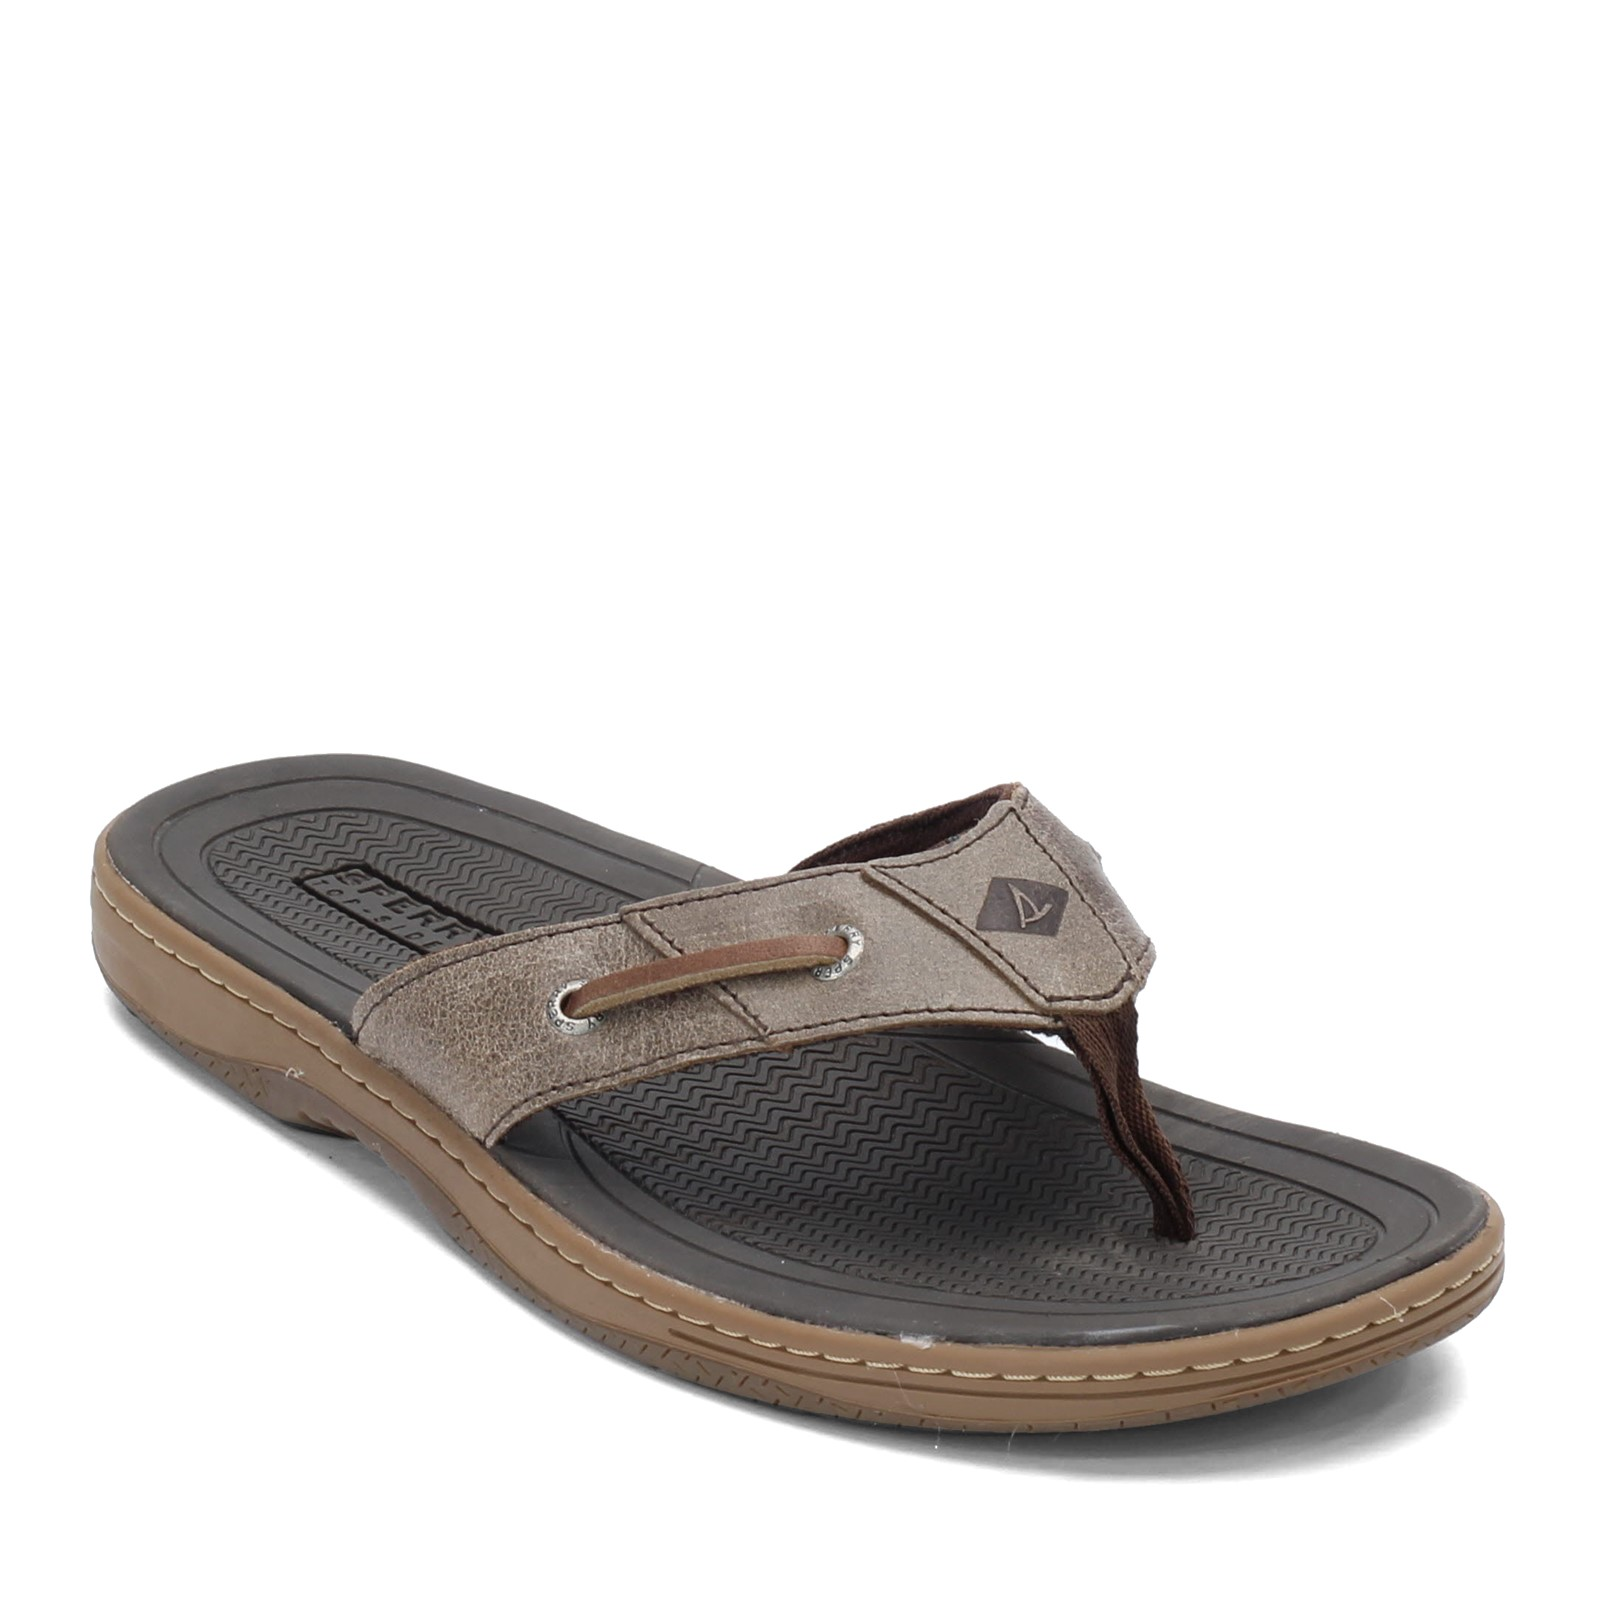 Men's Sperry, Baitfish Thong Sandal